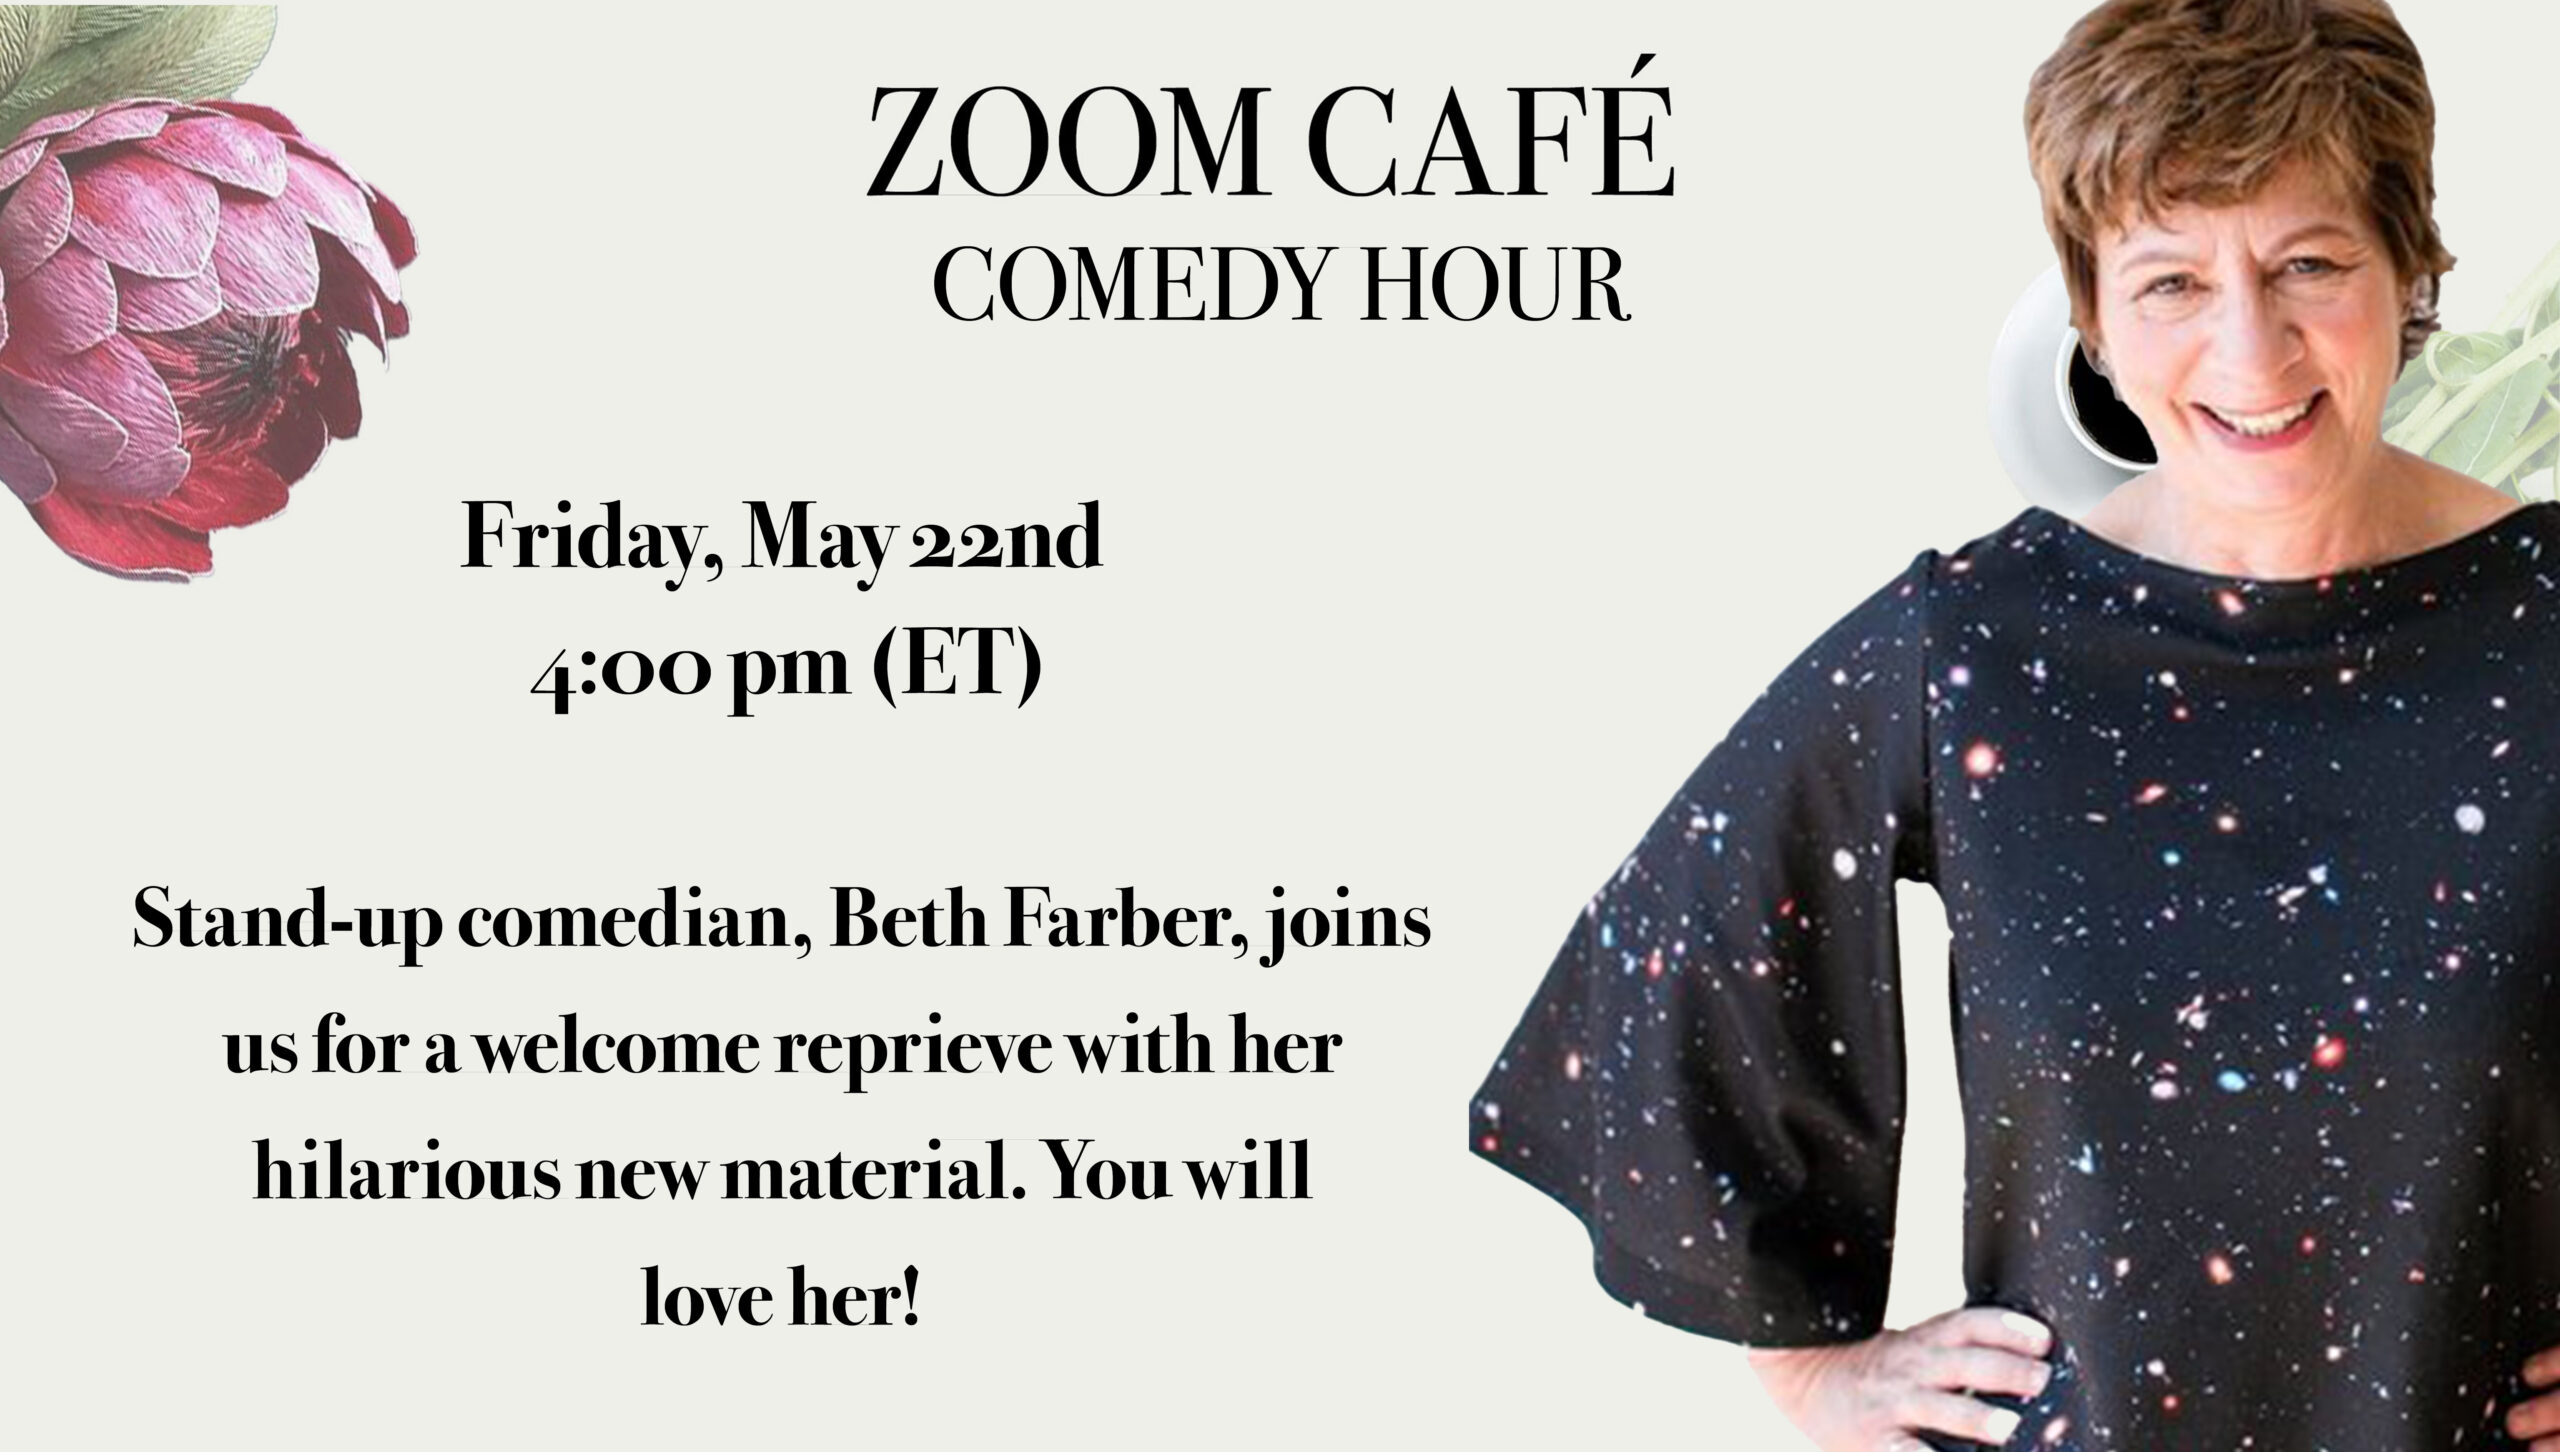 We met comedian Beth Farber for a hilarious stand-up session.